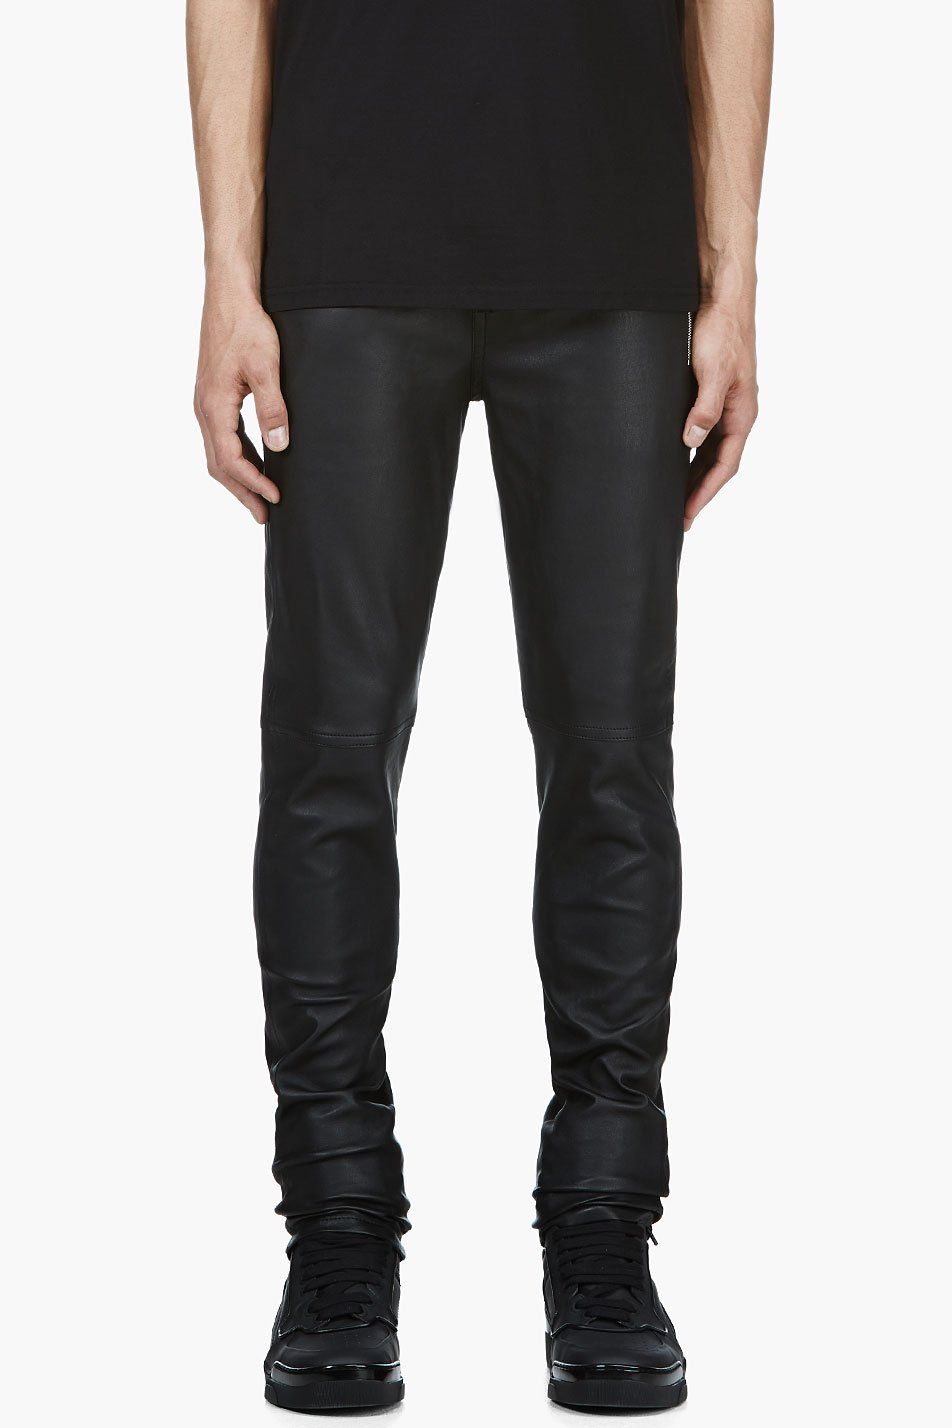 givenchy black buffed leather trousers